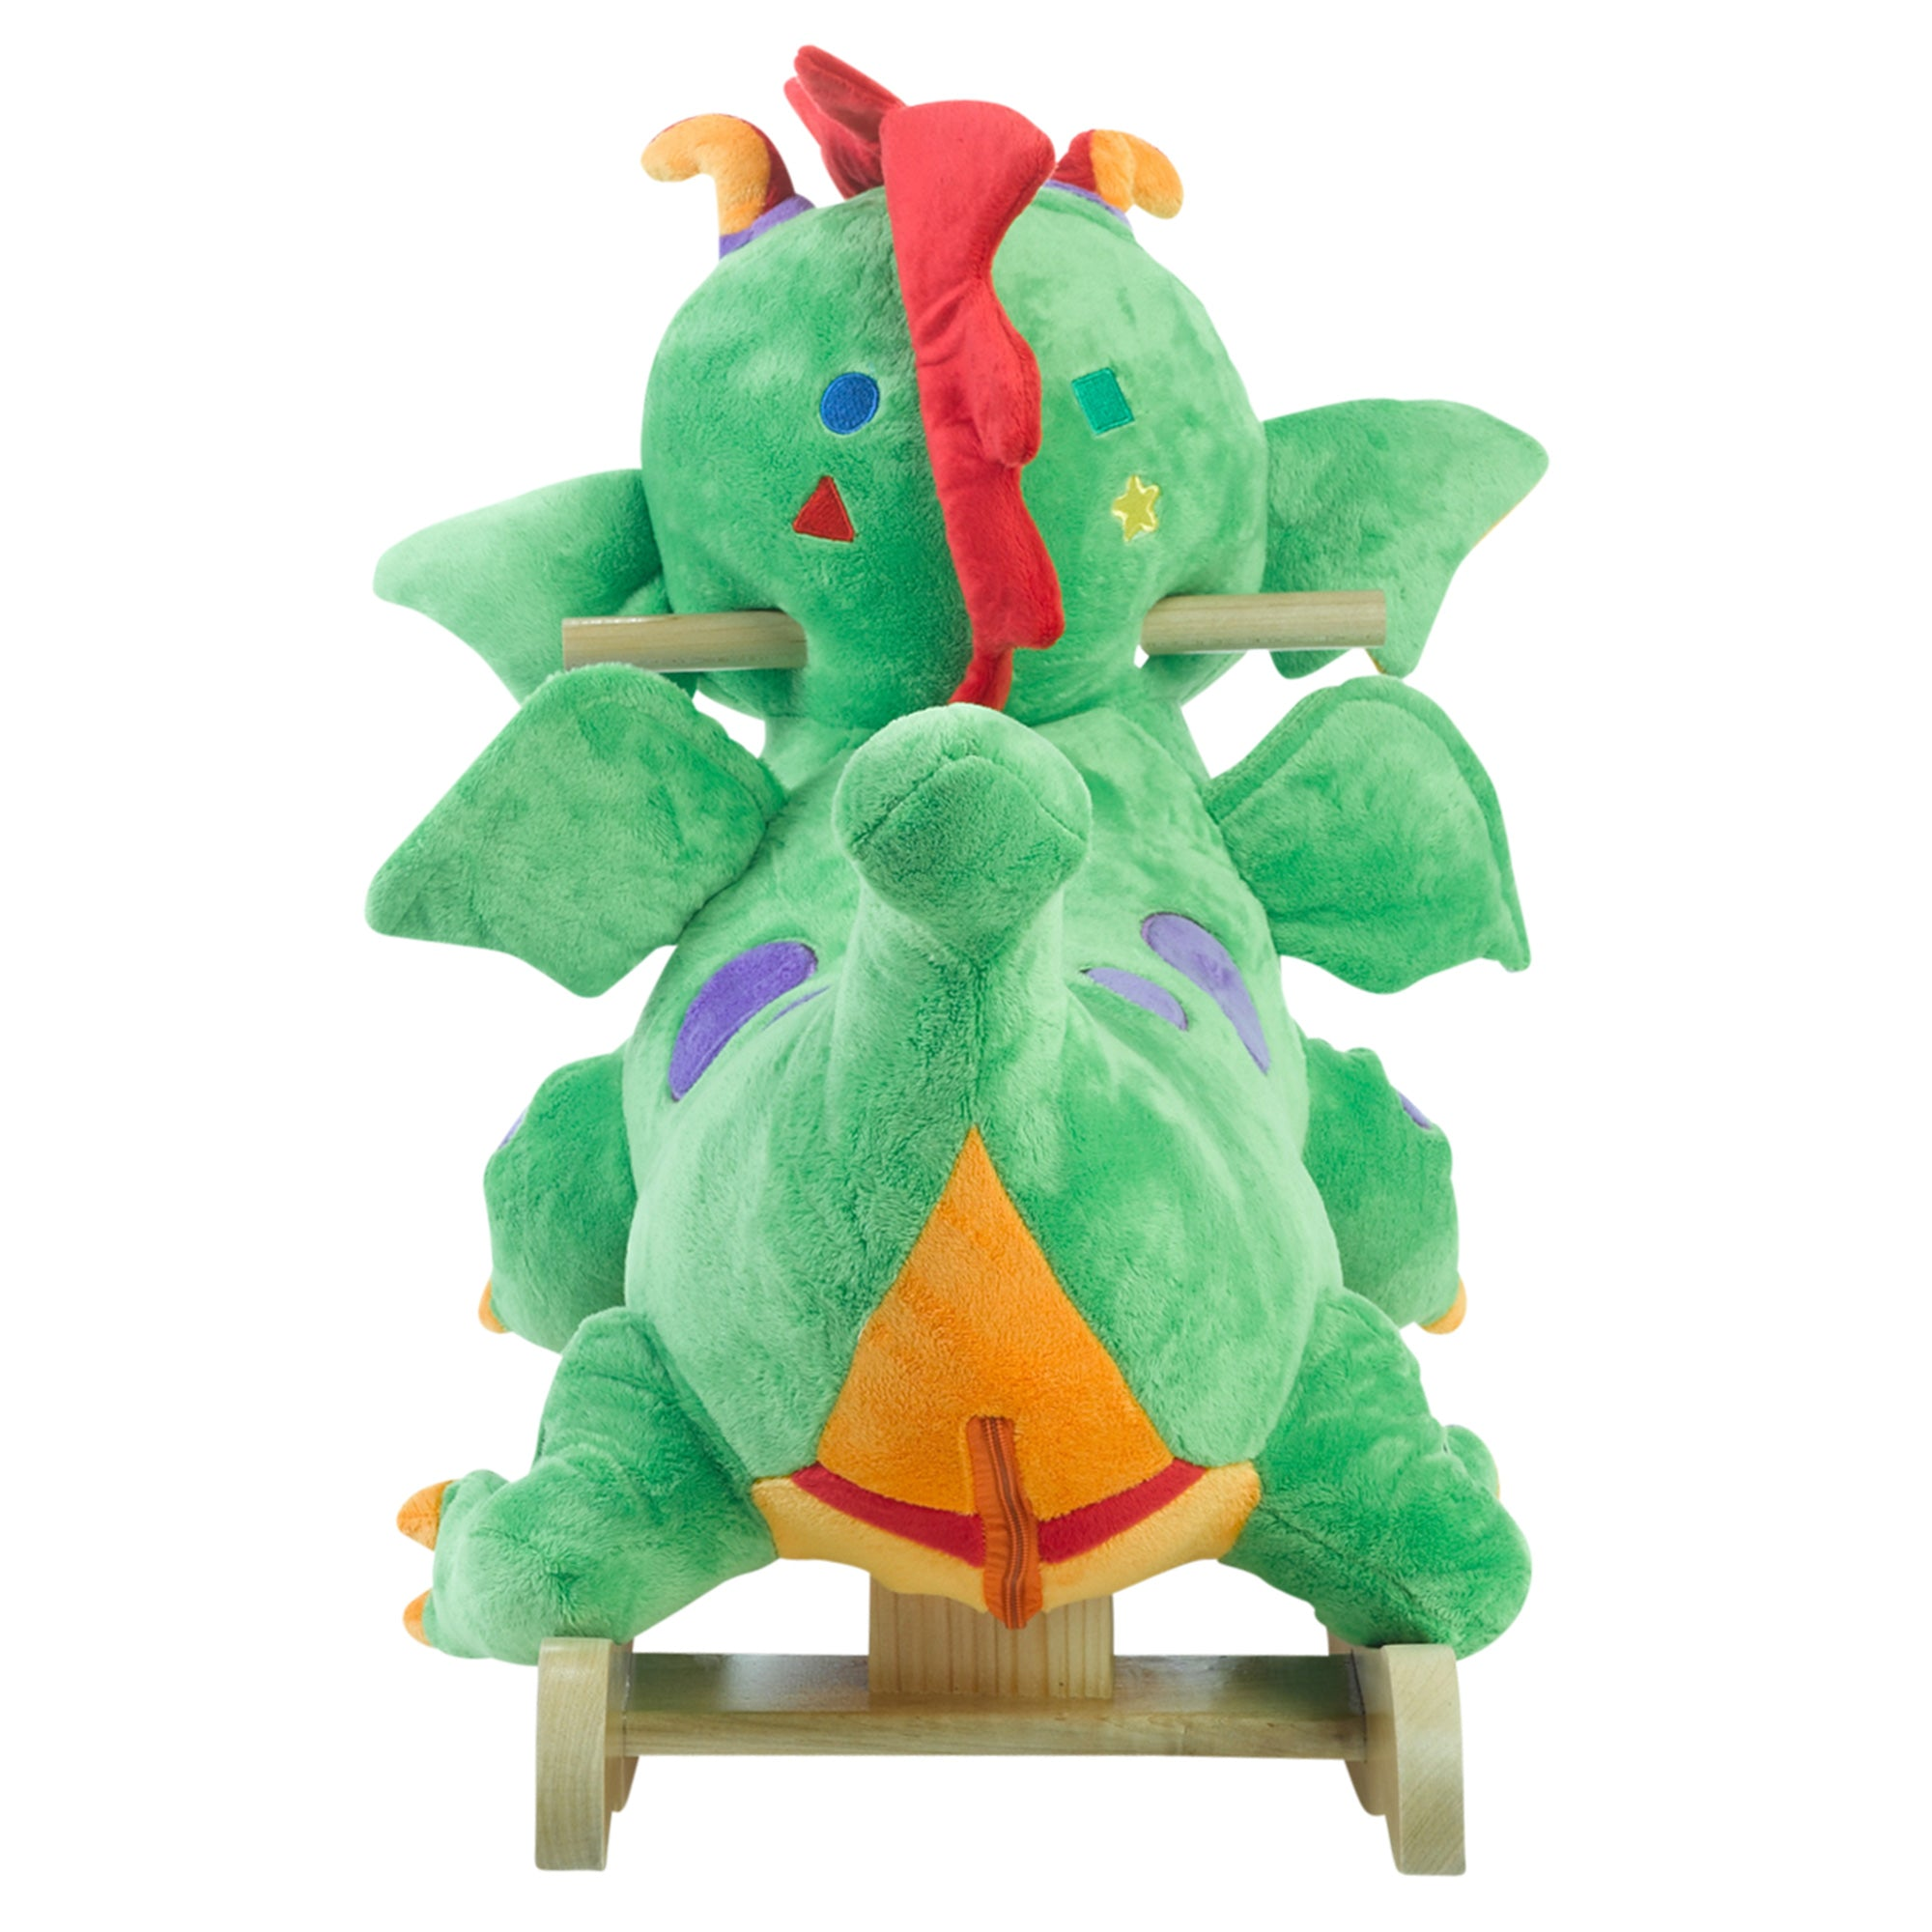 Poof the Green Dragon Classic rockAbye